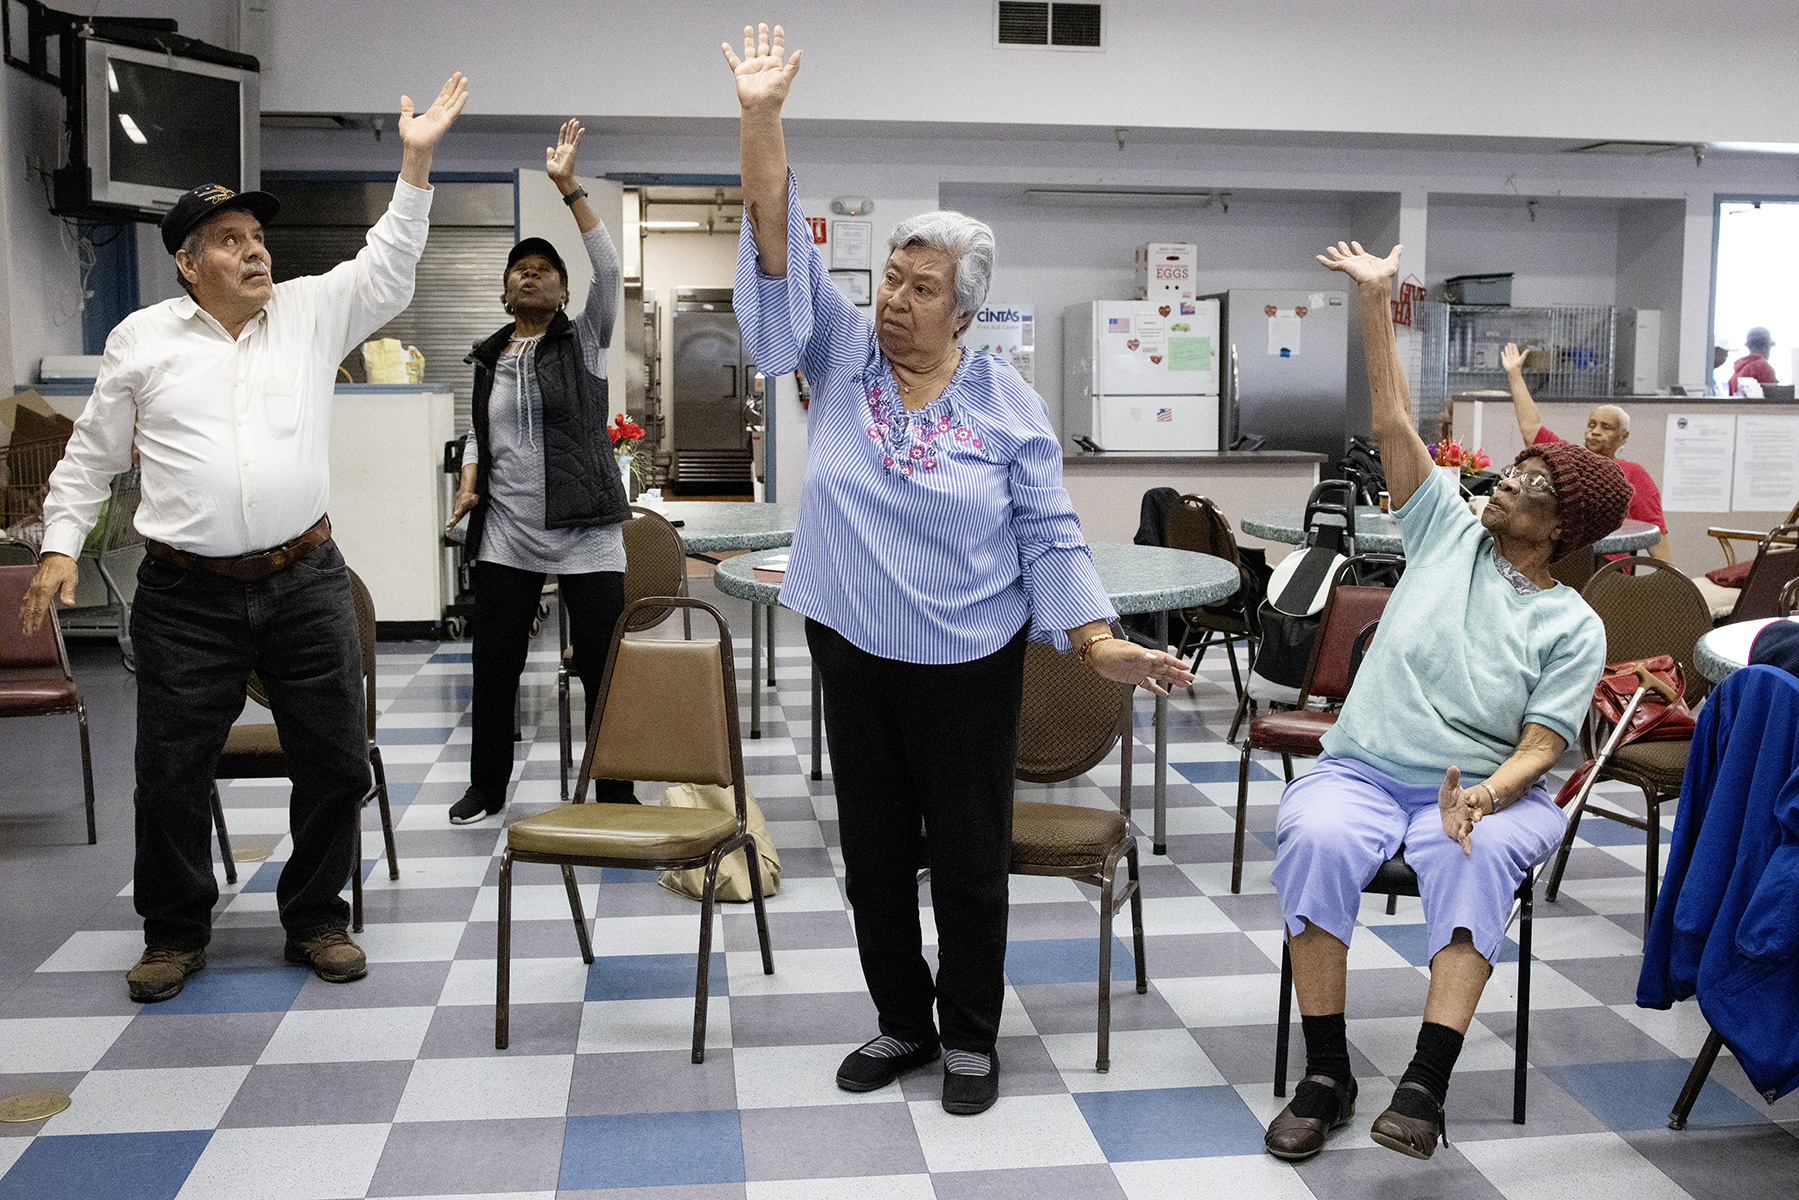 Seniors take a Tai Chi class at the East Palo Alto Senior Center in East Palo Alto, Calif., on April 17, 2019. The center, which serves as a community gathering place for seniors in the city, has a variety of activities and also serves affordable meals. This is an important asset in the community especially since East Palo Alto, once a relatively affordable city in Silicon Valley, is facing rising housing costs and gentrification due to its close proximity to the corporate headquarters of large technology companies.